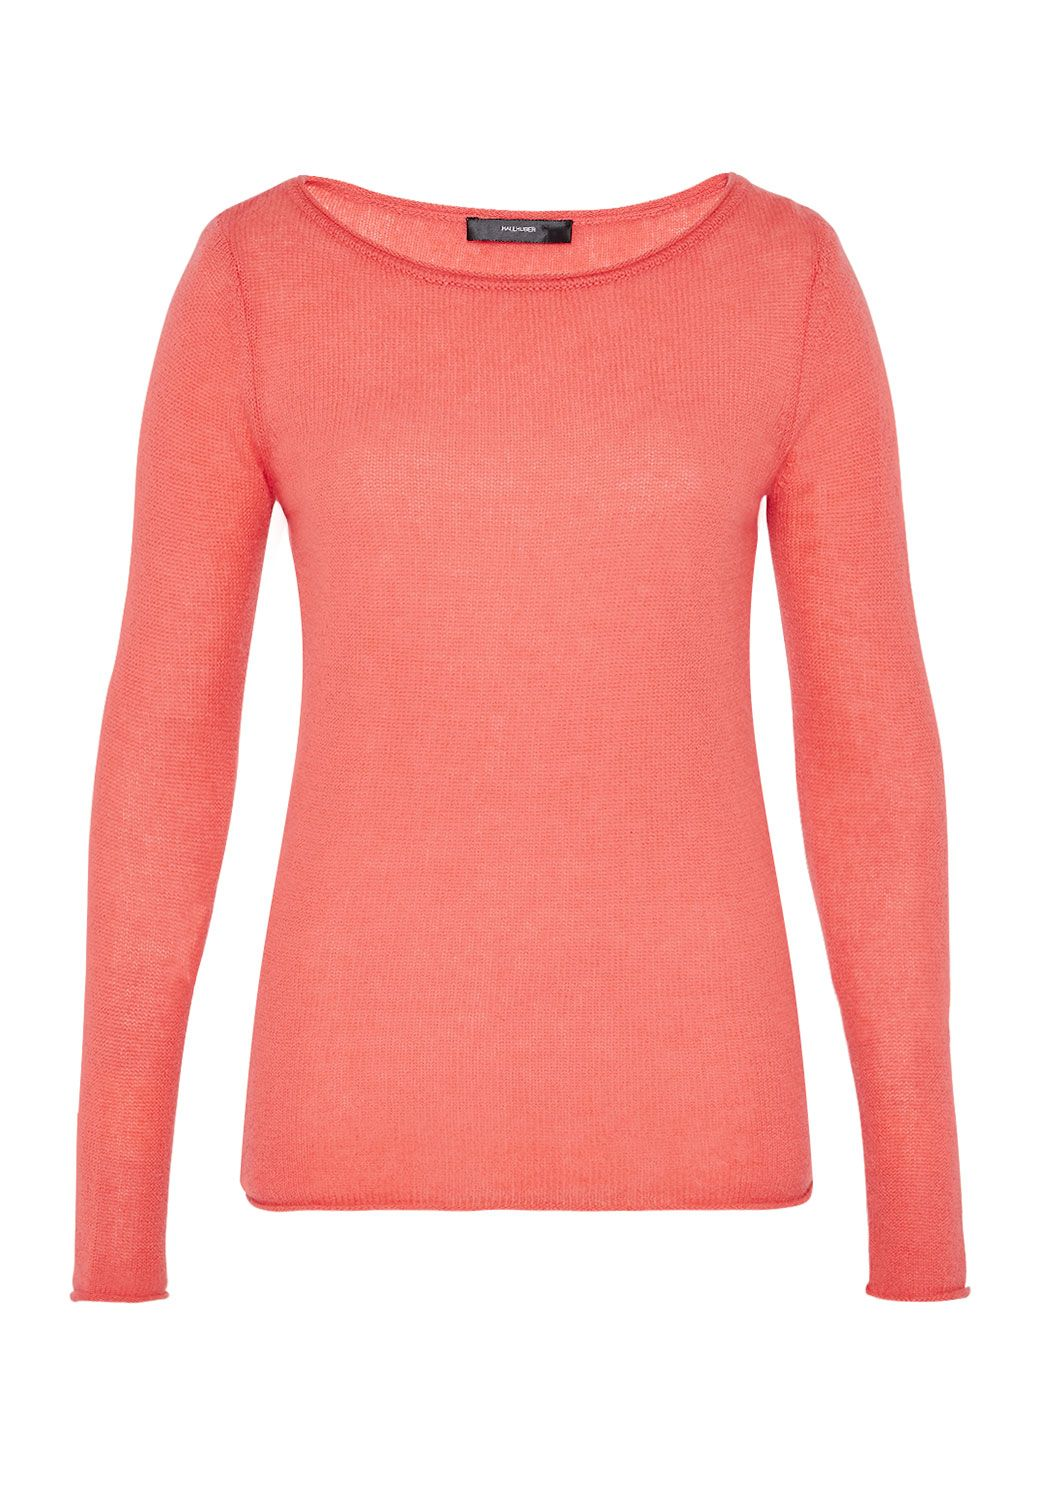 Hallhuber Basic Cashmere Pullover, Red